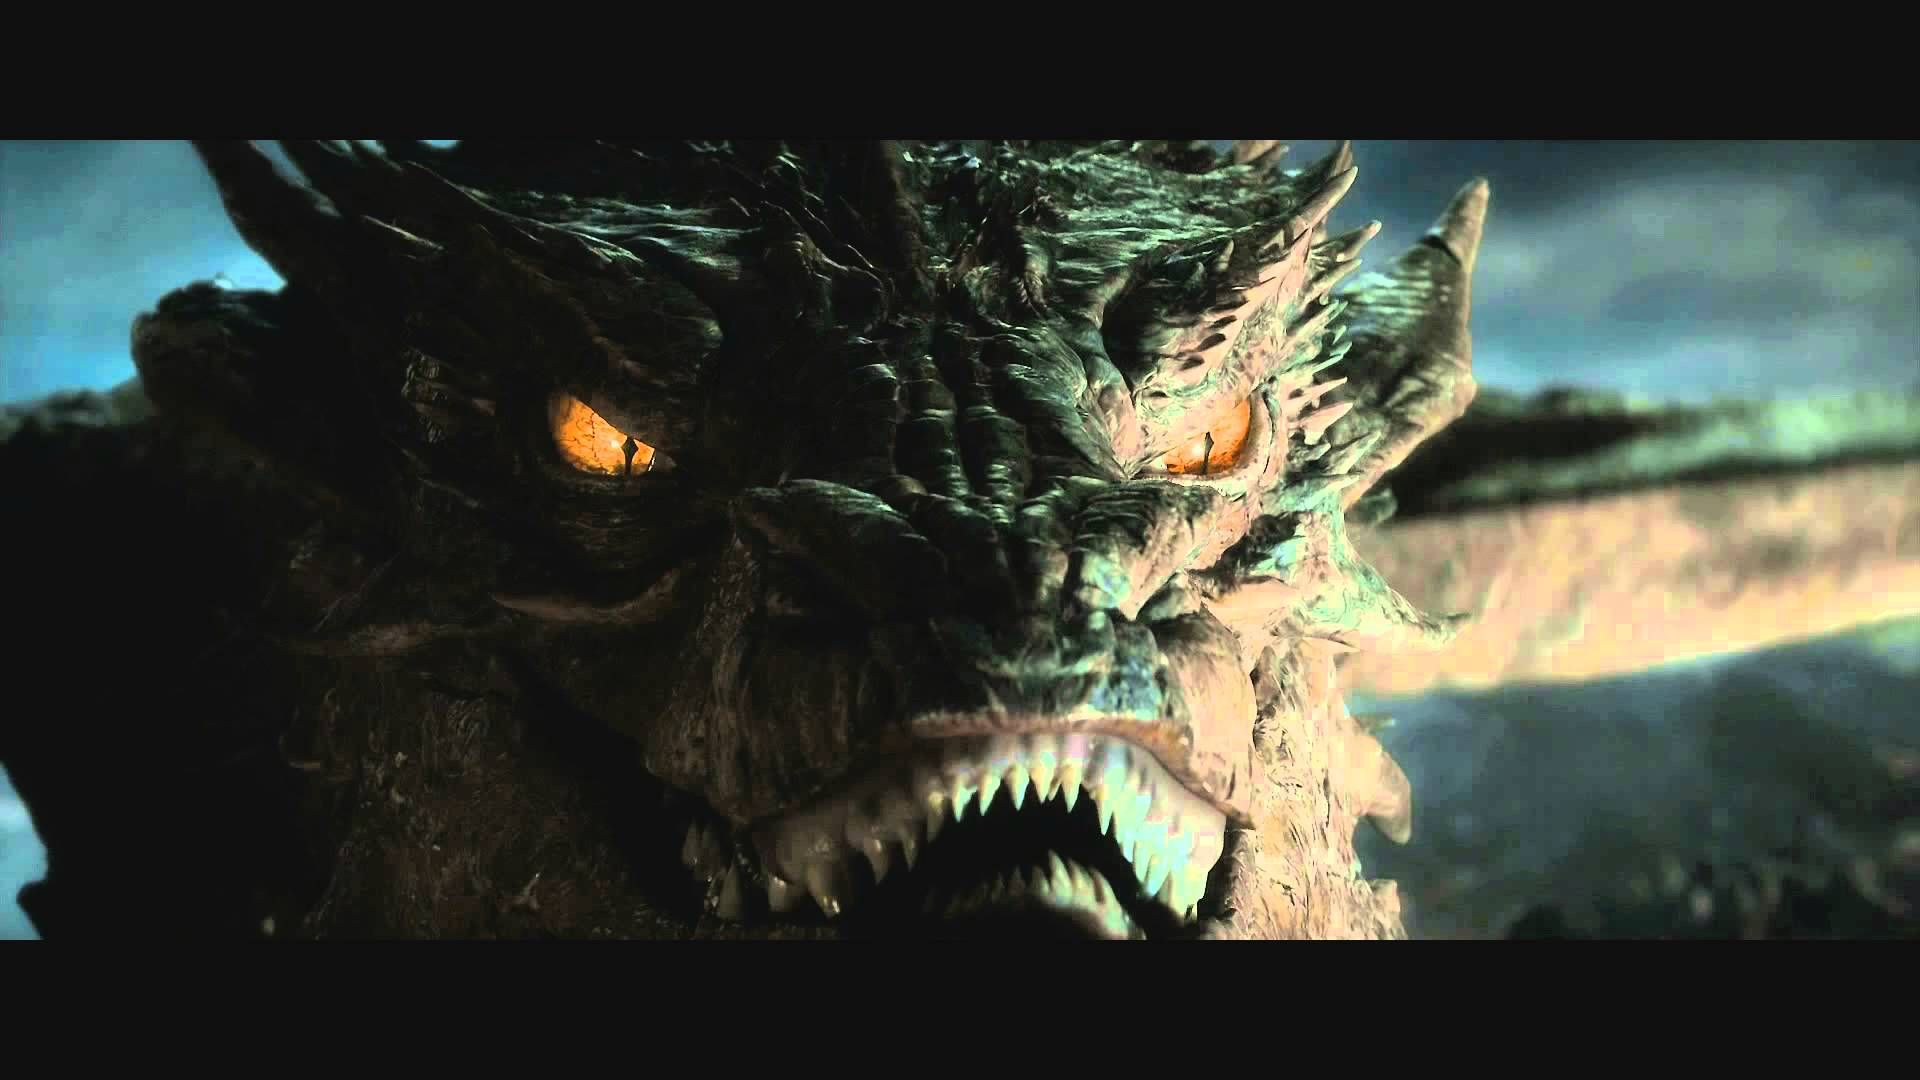 Benedict Cumberbatch as Smaug.   Benedicts voice in all its glory, excluding all the background noises